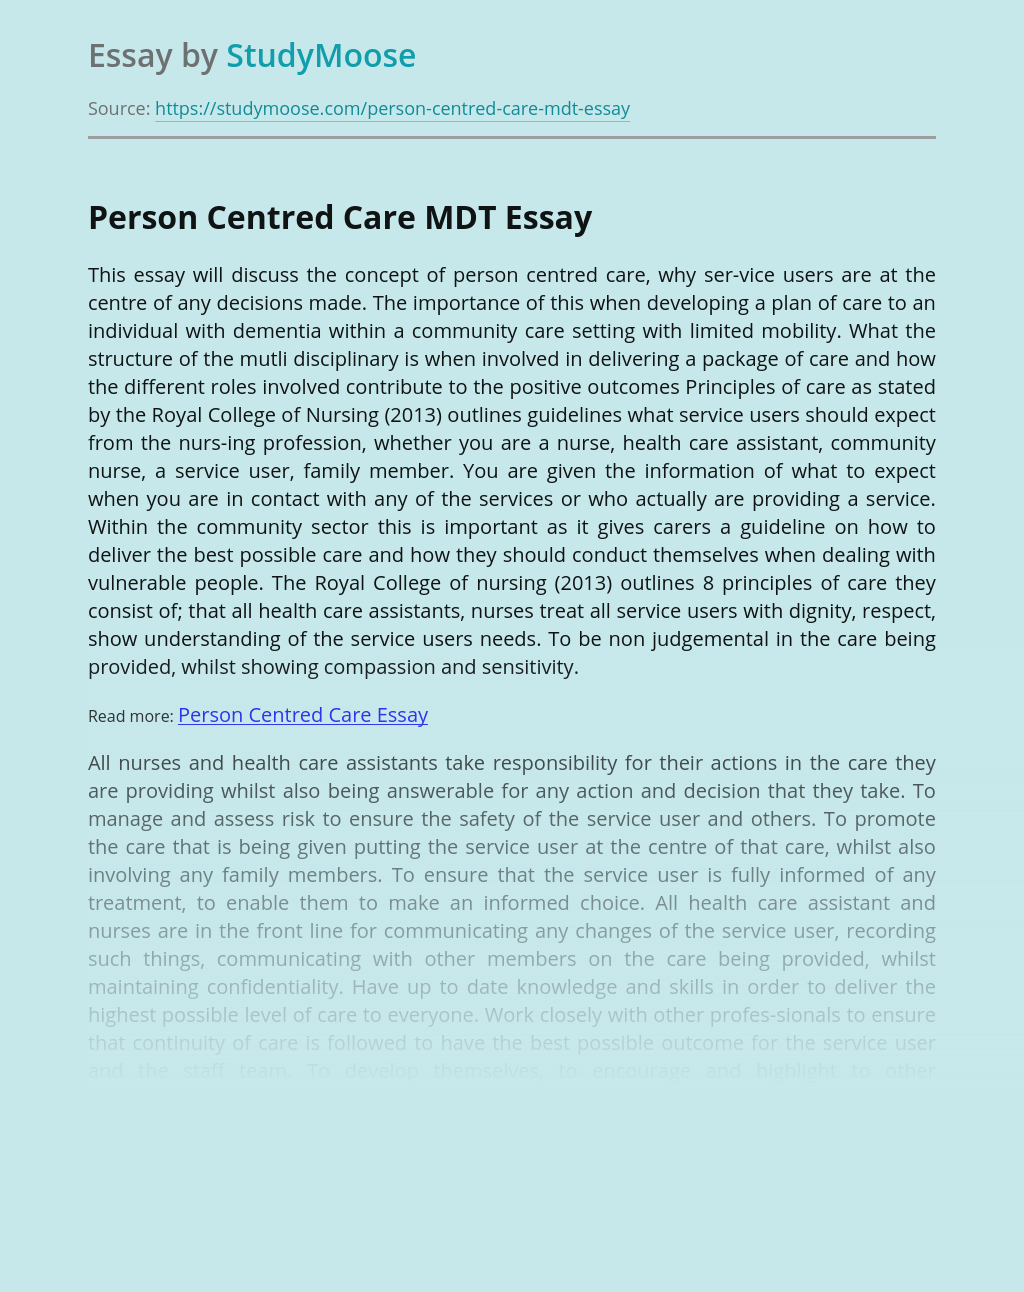 Person Centred Care MDT